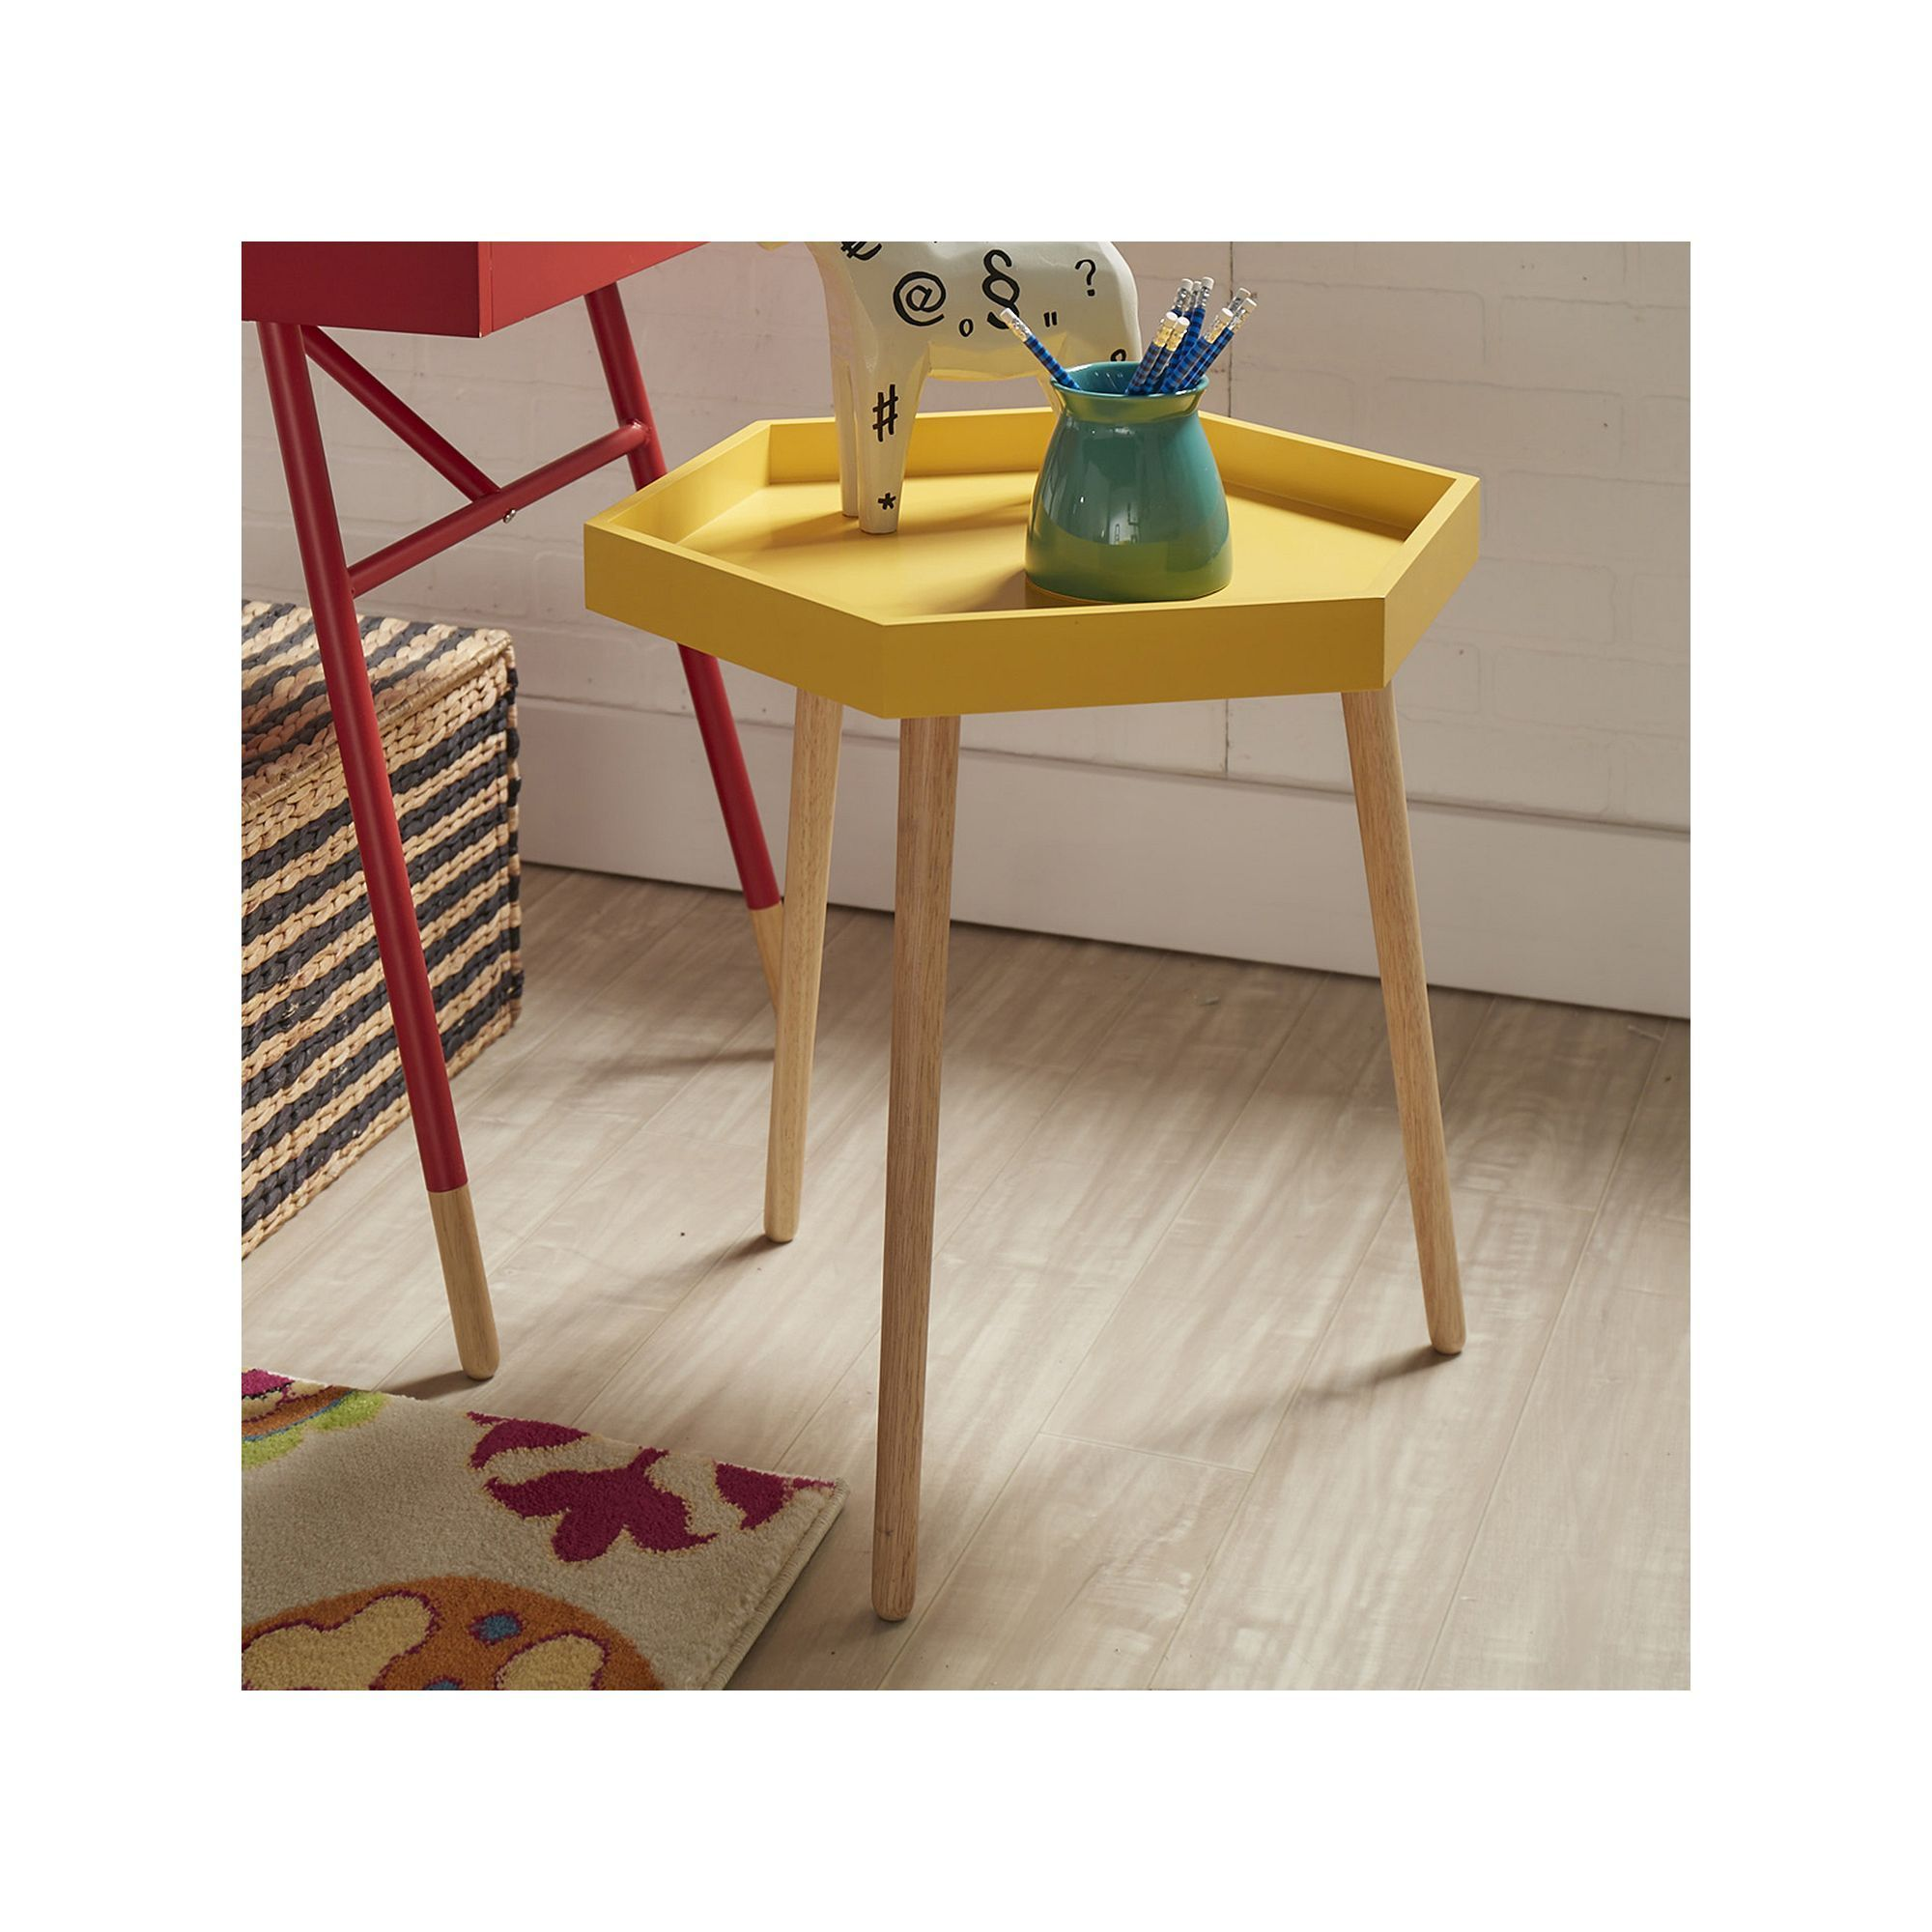 homevance sipea hexagon end table products mid accent target yellow leick corner computer and writing desk gold nightstand ikea round kitchen barn style dining home decor